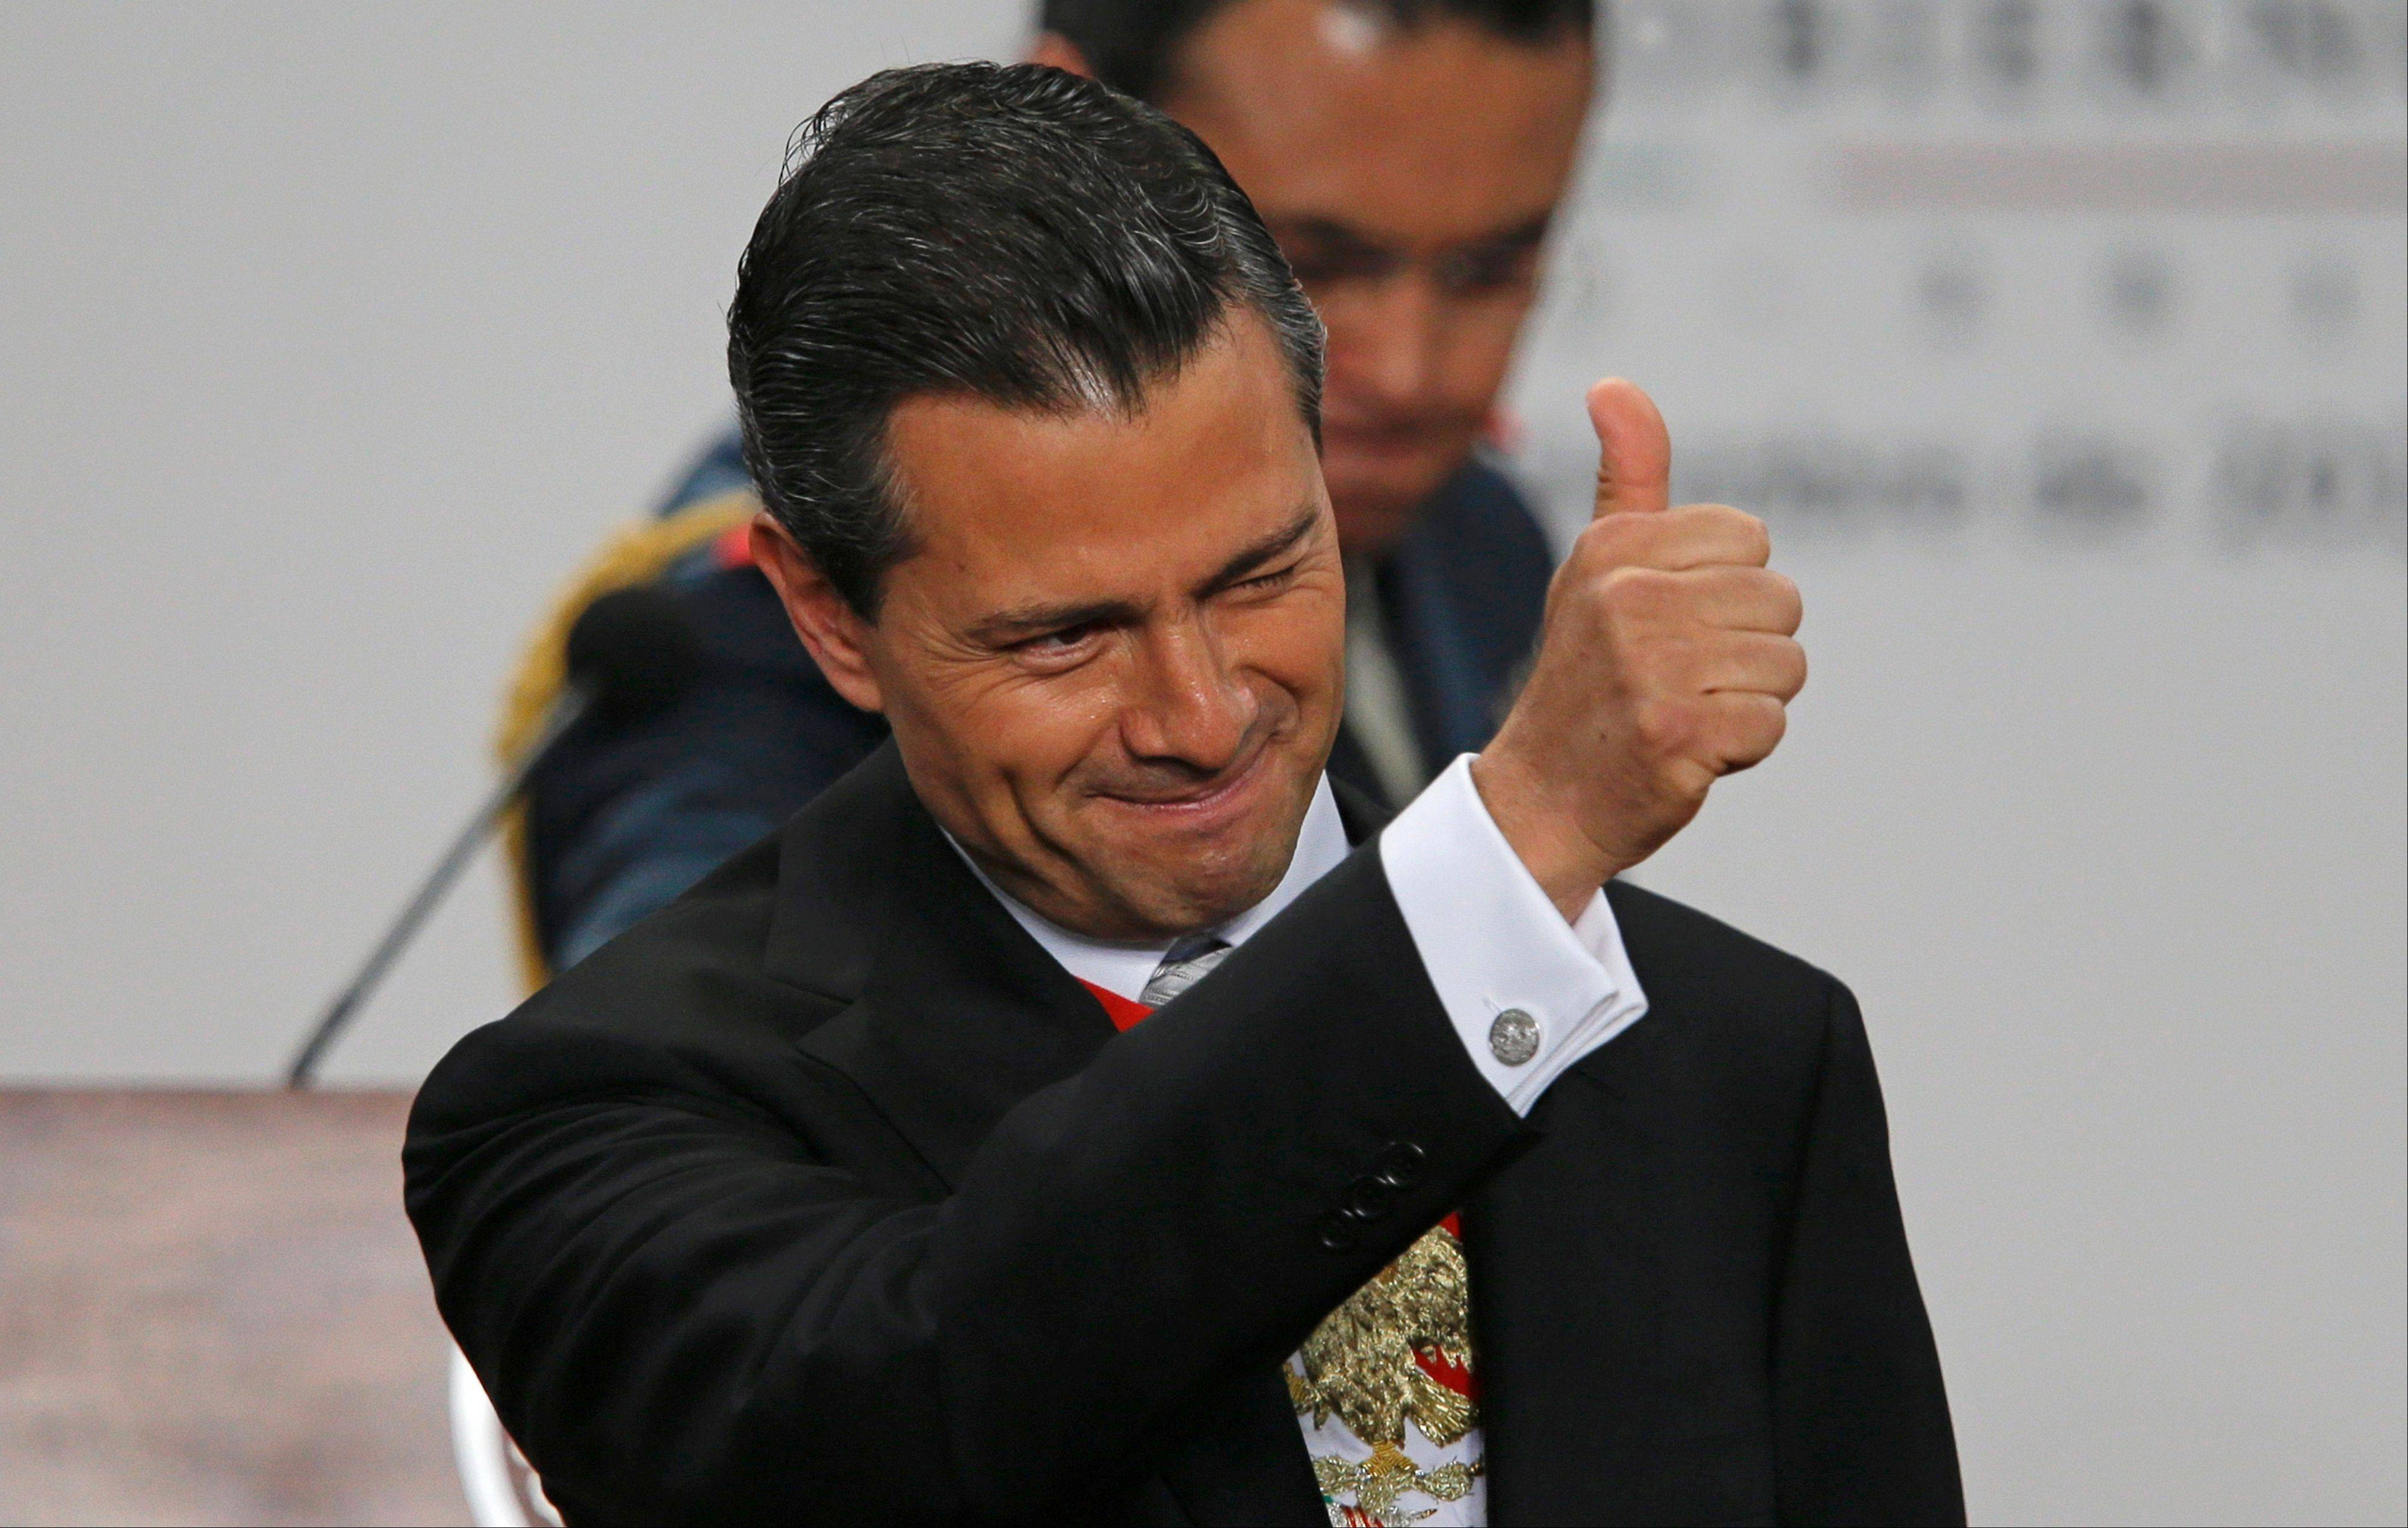 Mexico�s President Enrique Pena Nieto gives a thumbs up as he gives his first state-of-the-nation address at Los Pinos presidential residence in Mexico City, Monday, Sept. 2, 2013. Pena Nieto opened his address by praising the passage of a key education reform just hours earlier.